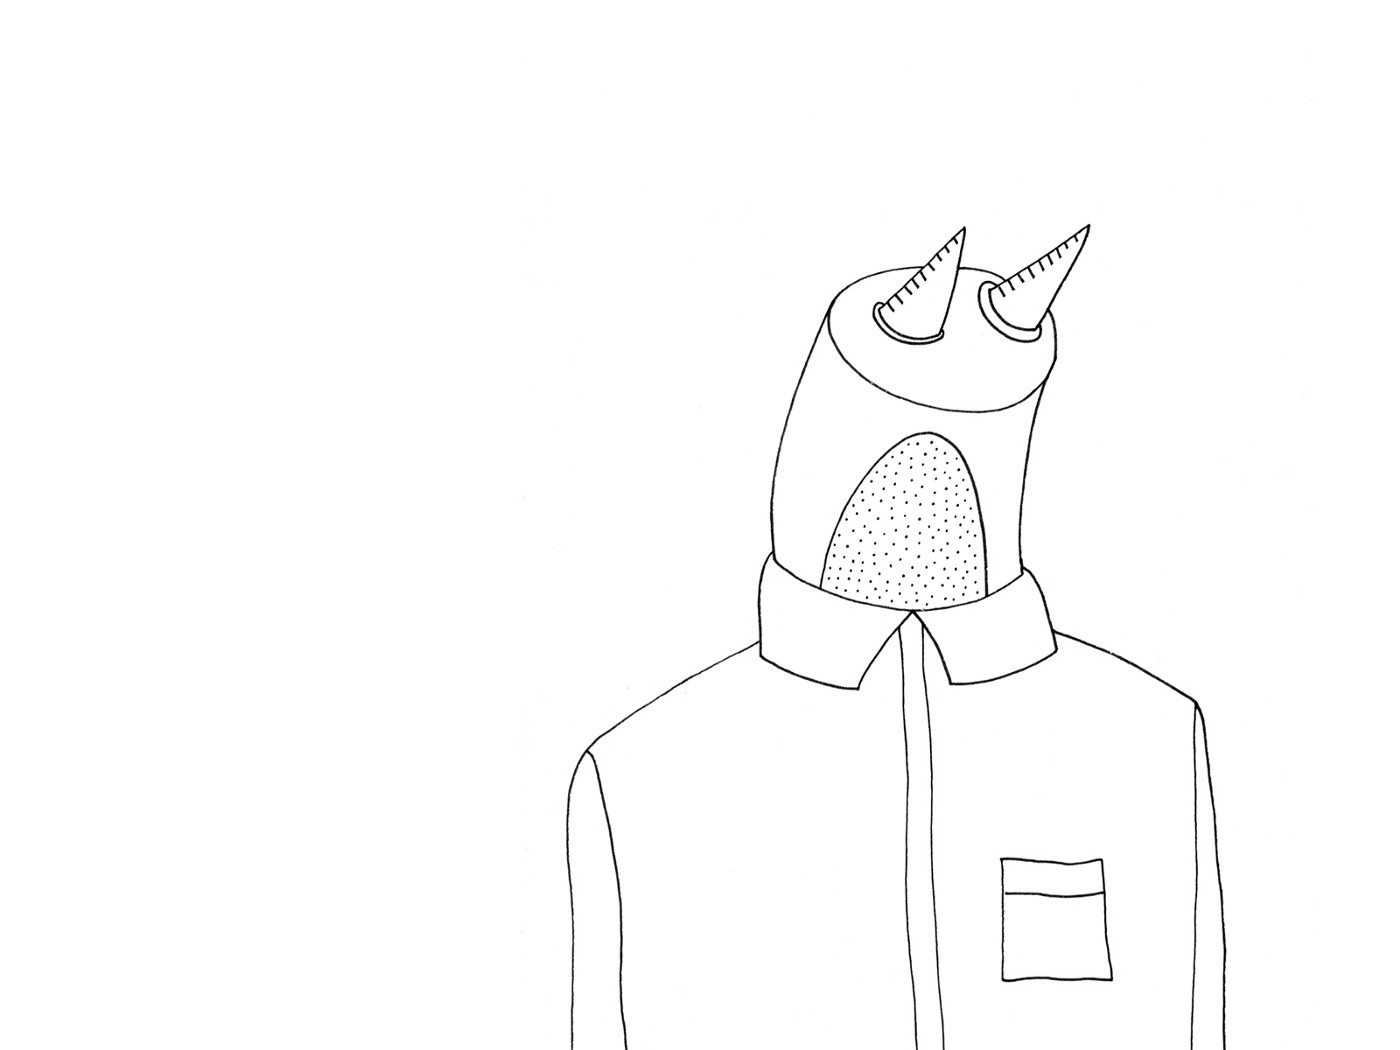 Illustration of a man whose head is like a robot's